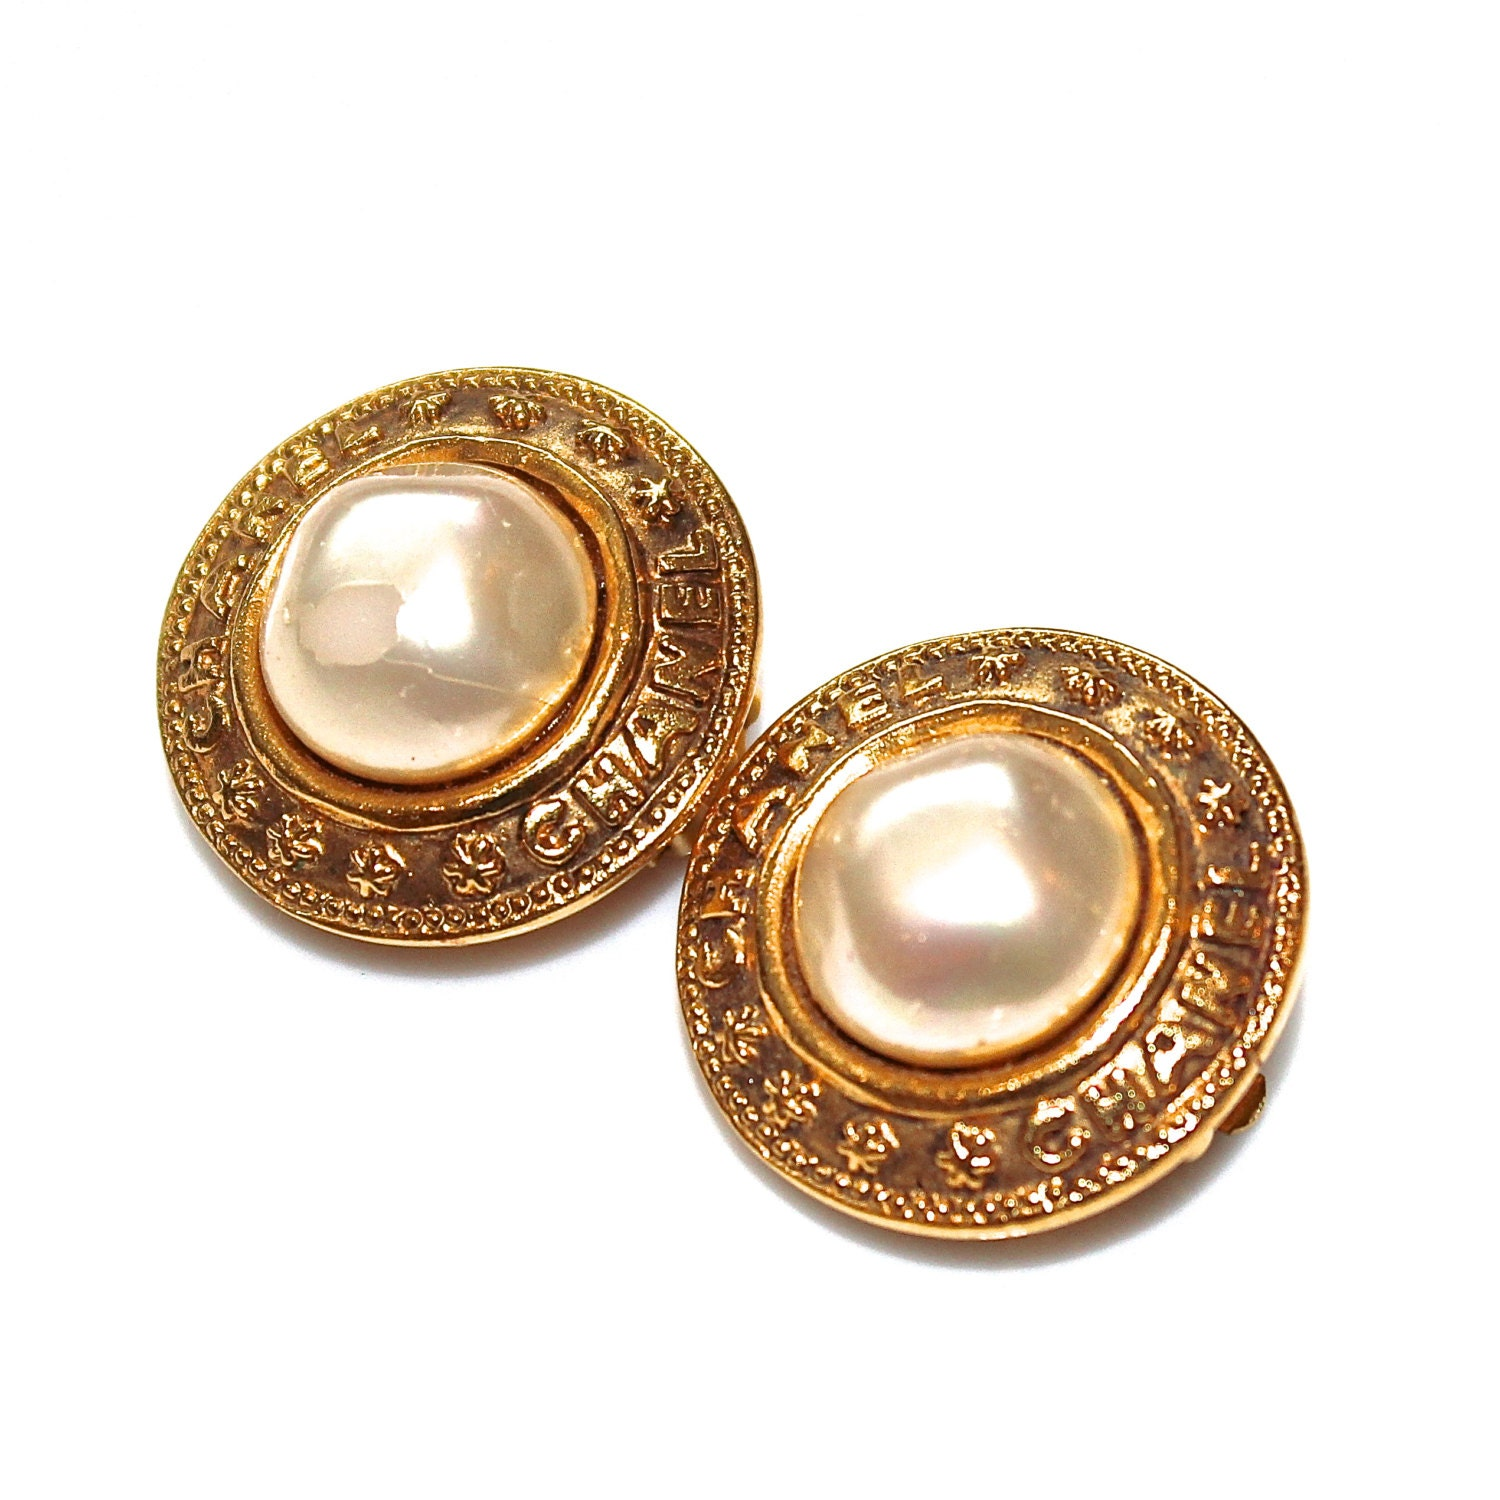 channel jewelry earrings vintage chanel pearl earrings designer vintage chanel 167